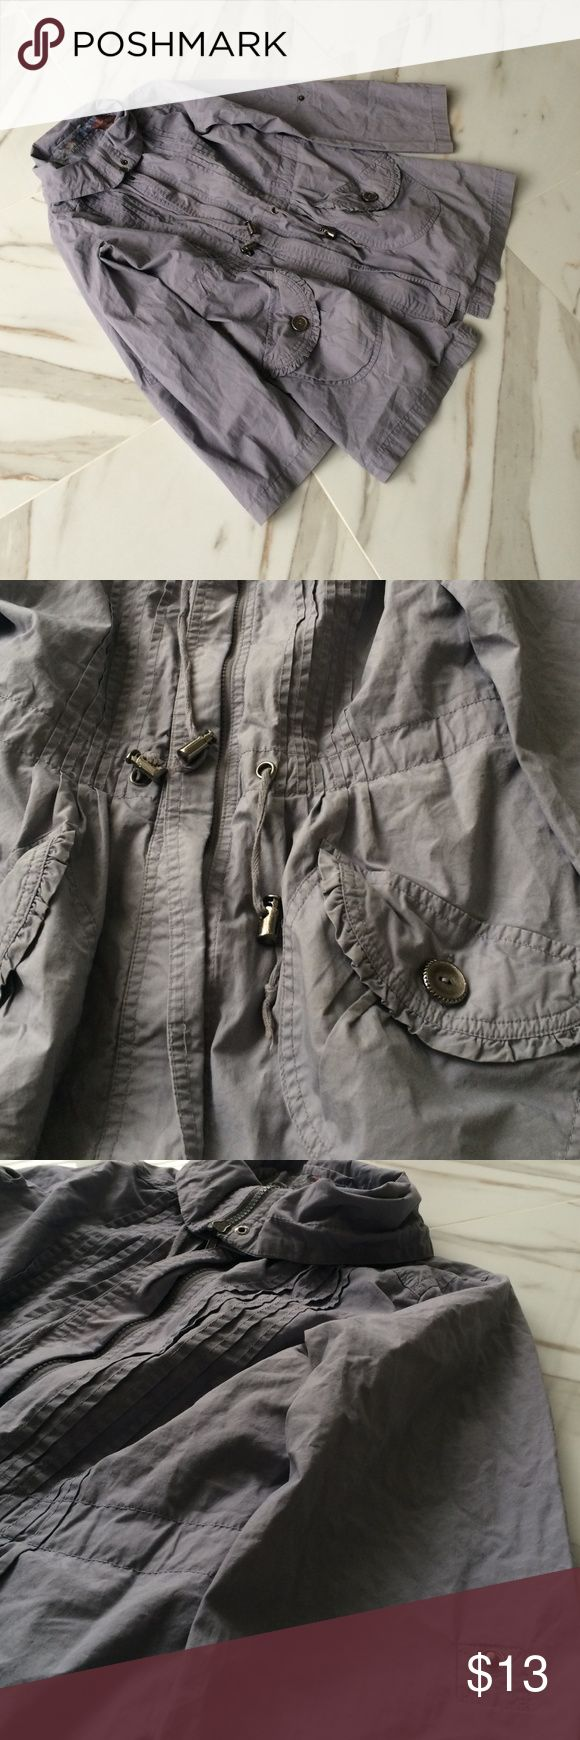 Denim Co Parka Style Light Coat Preloved Bought From London Hoodie Was Removed & Is Not Includes Denim Co Jackets & Coats